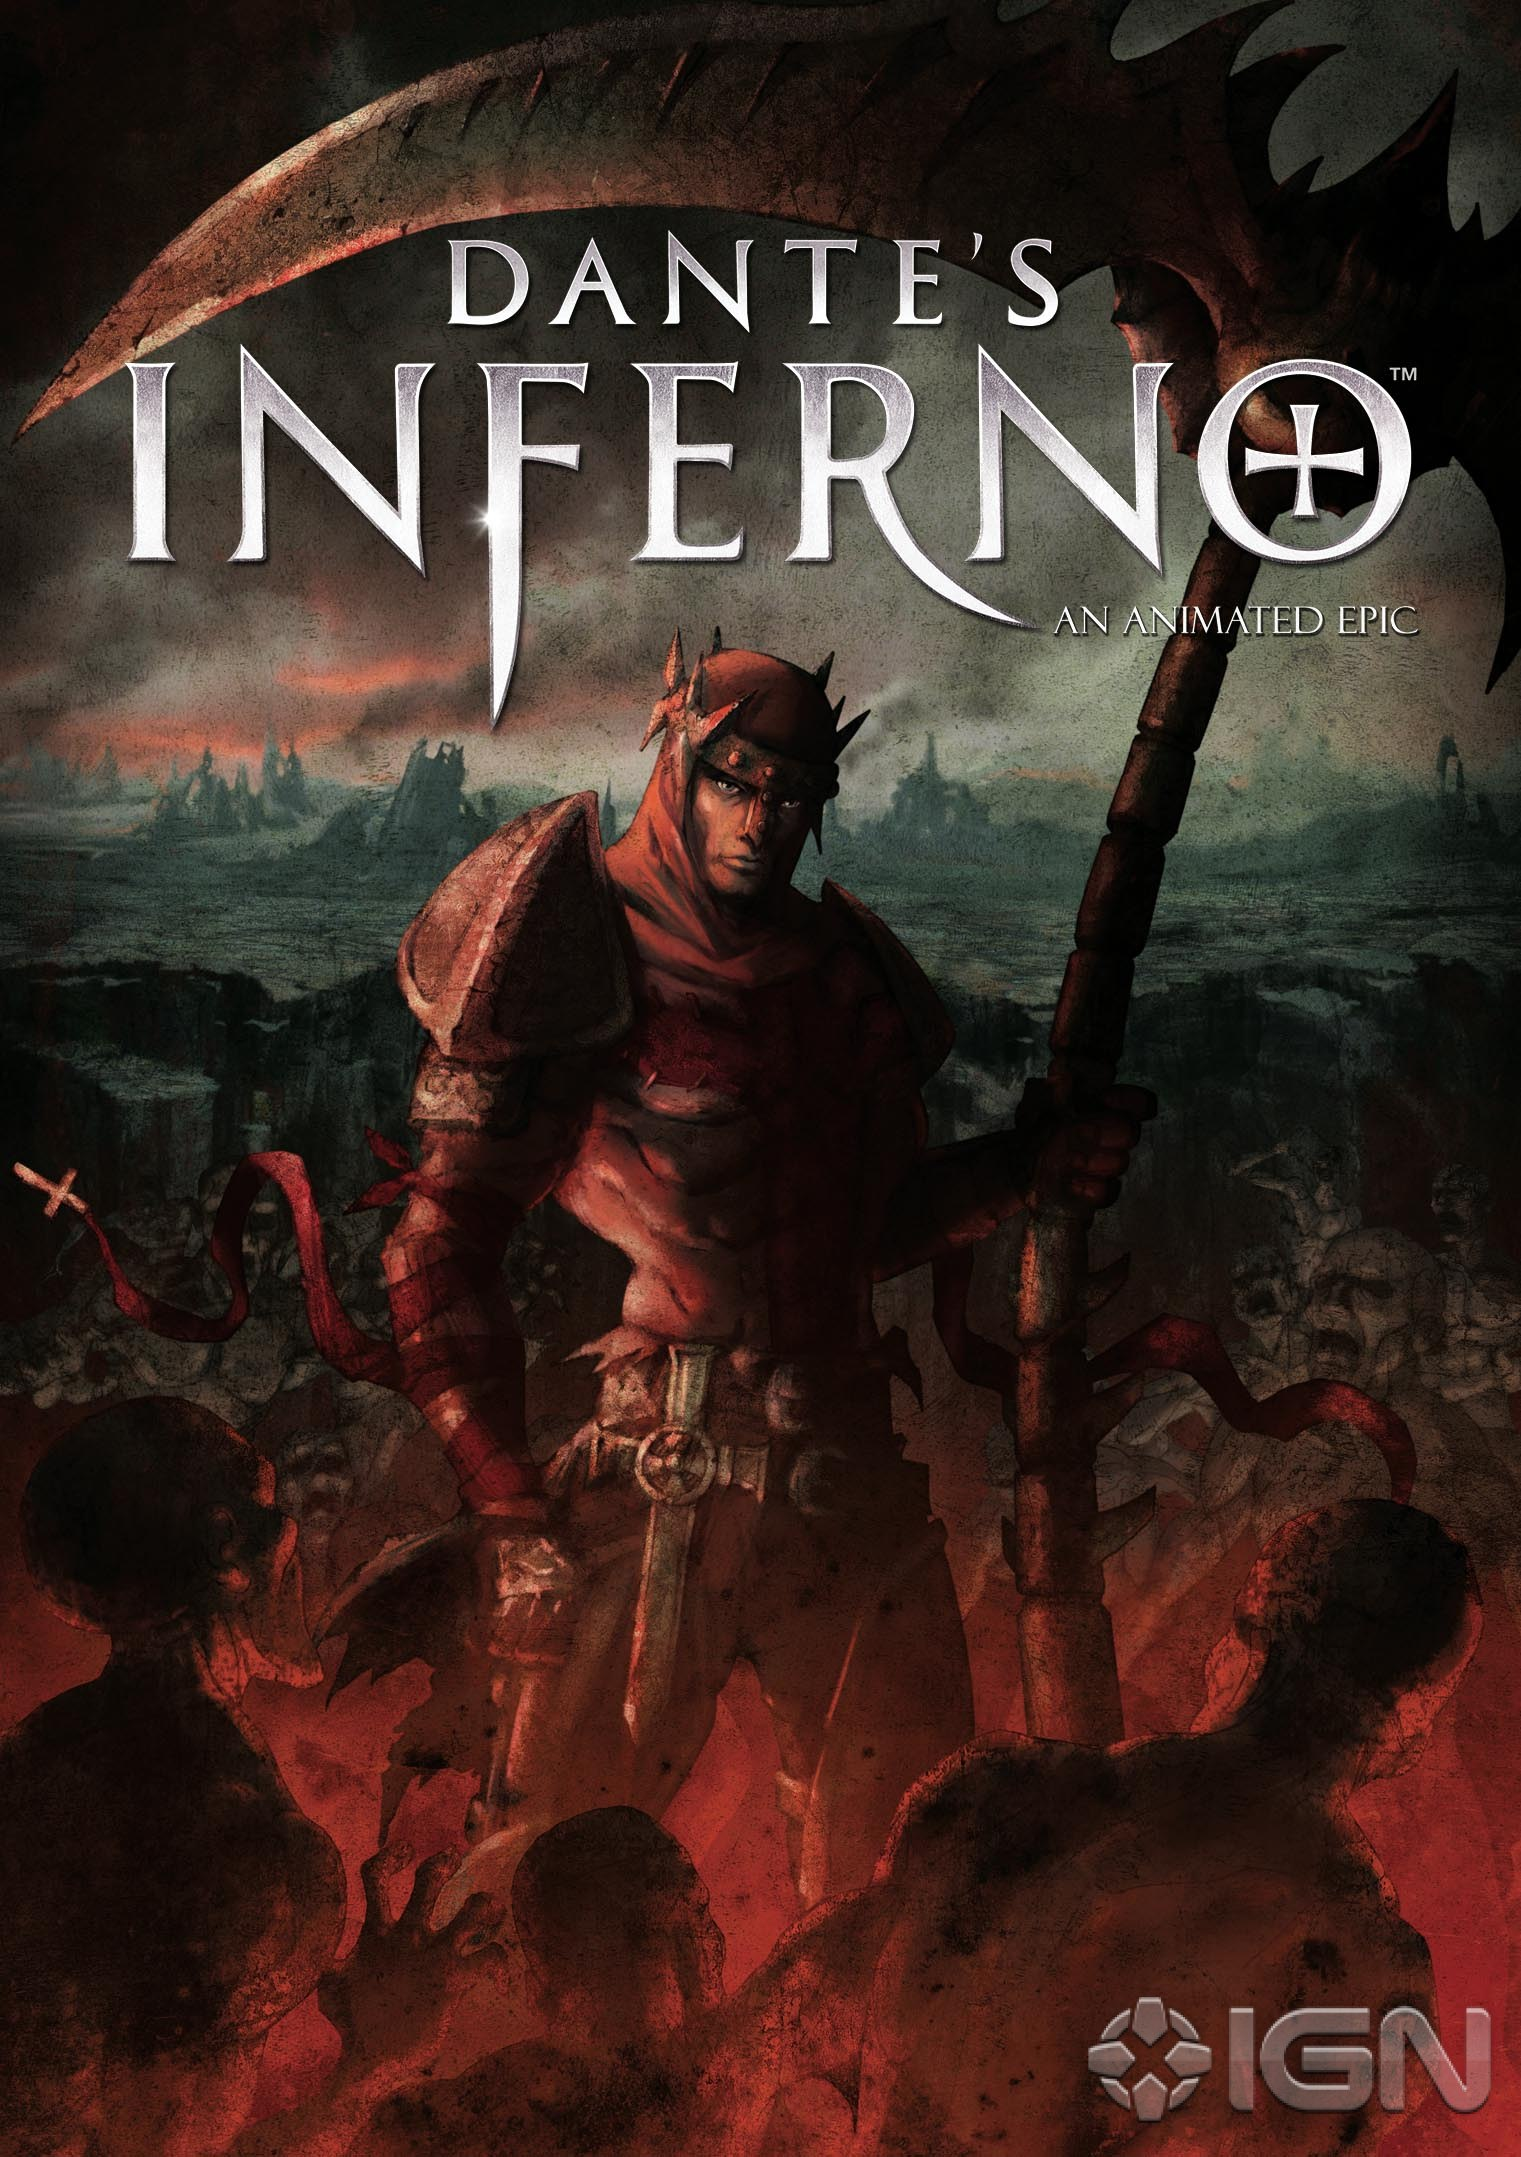 dante the inferno Get unlimited play of dante's inferno and dozens of other games in the ea access vault, a growing collection of great ea titles.